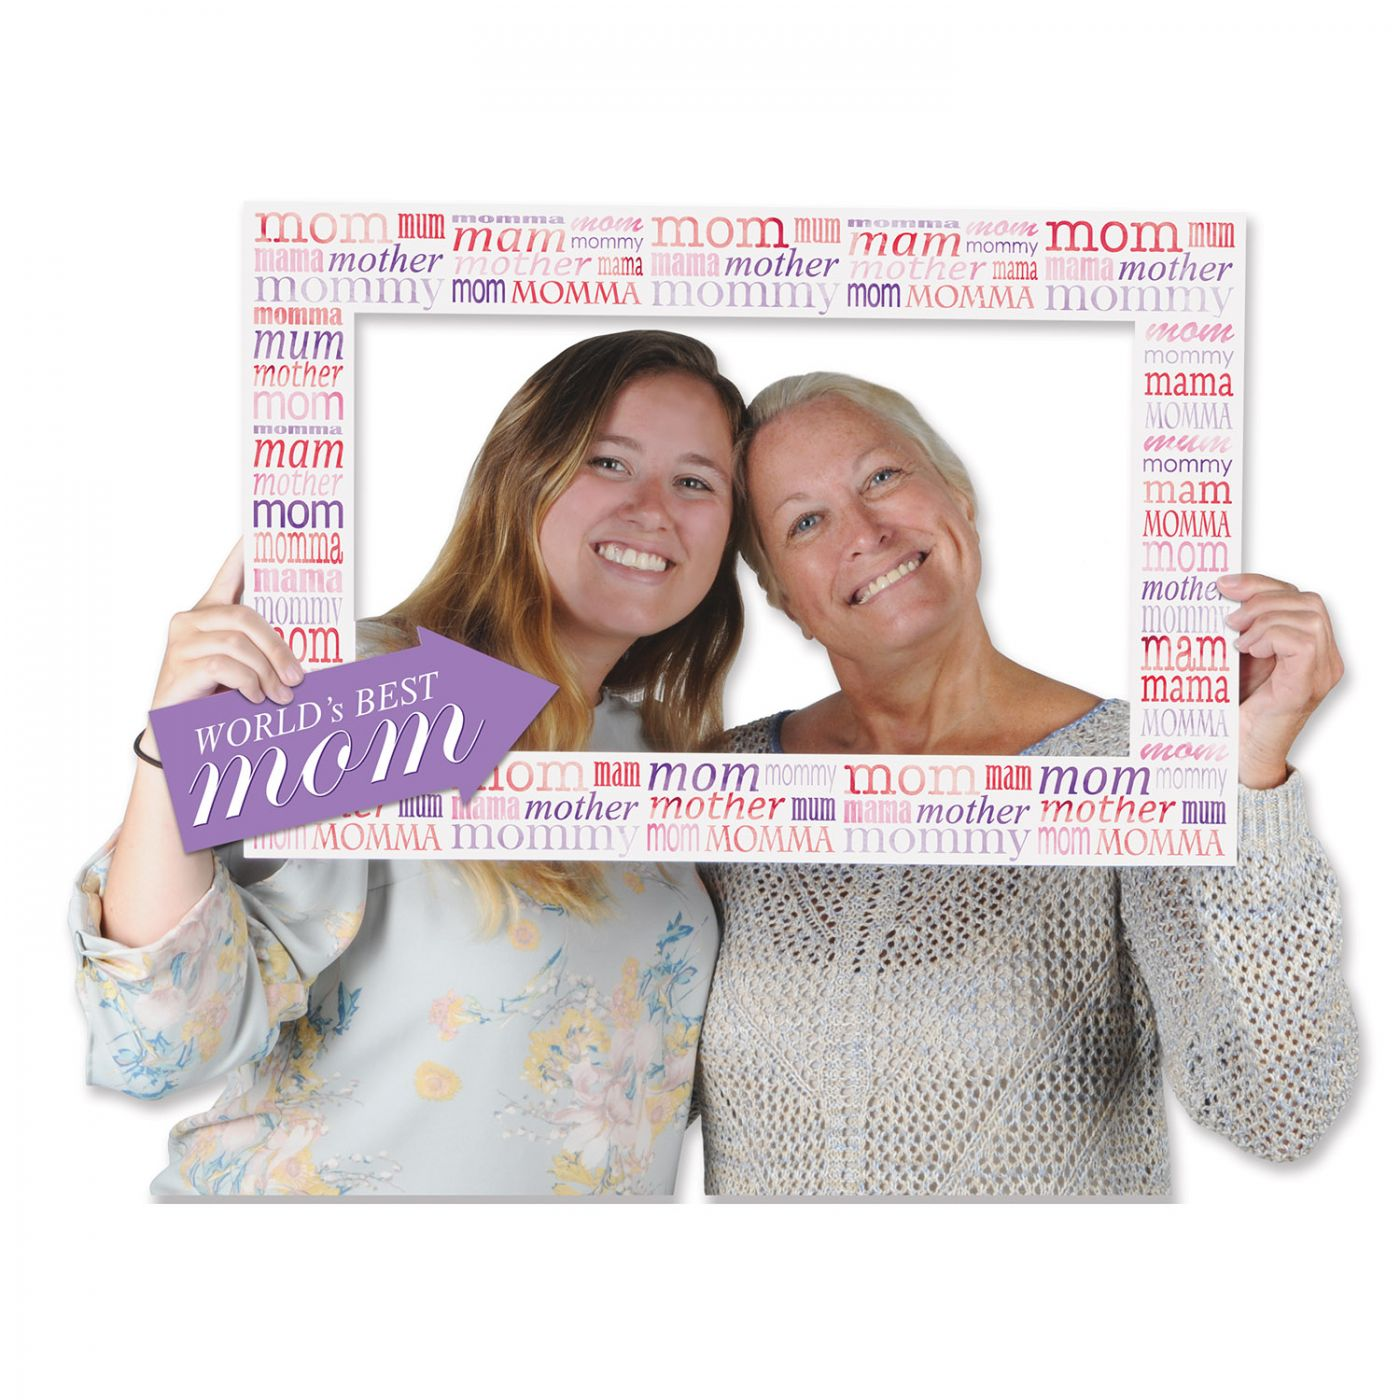 Aahs Engraving Worlds Best Mom Party Photo Frame Prop 35 X 30 inches